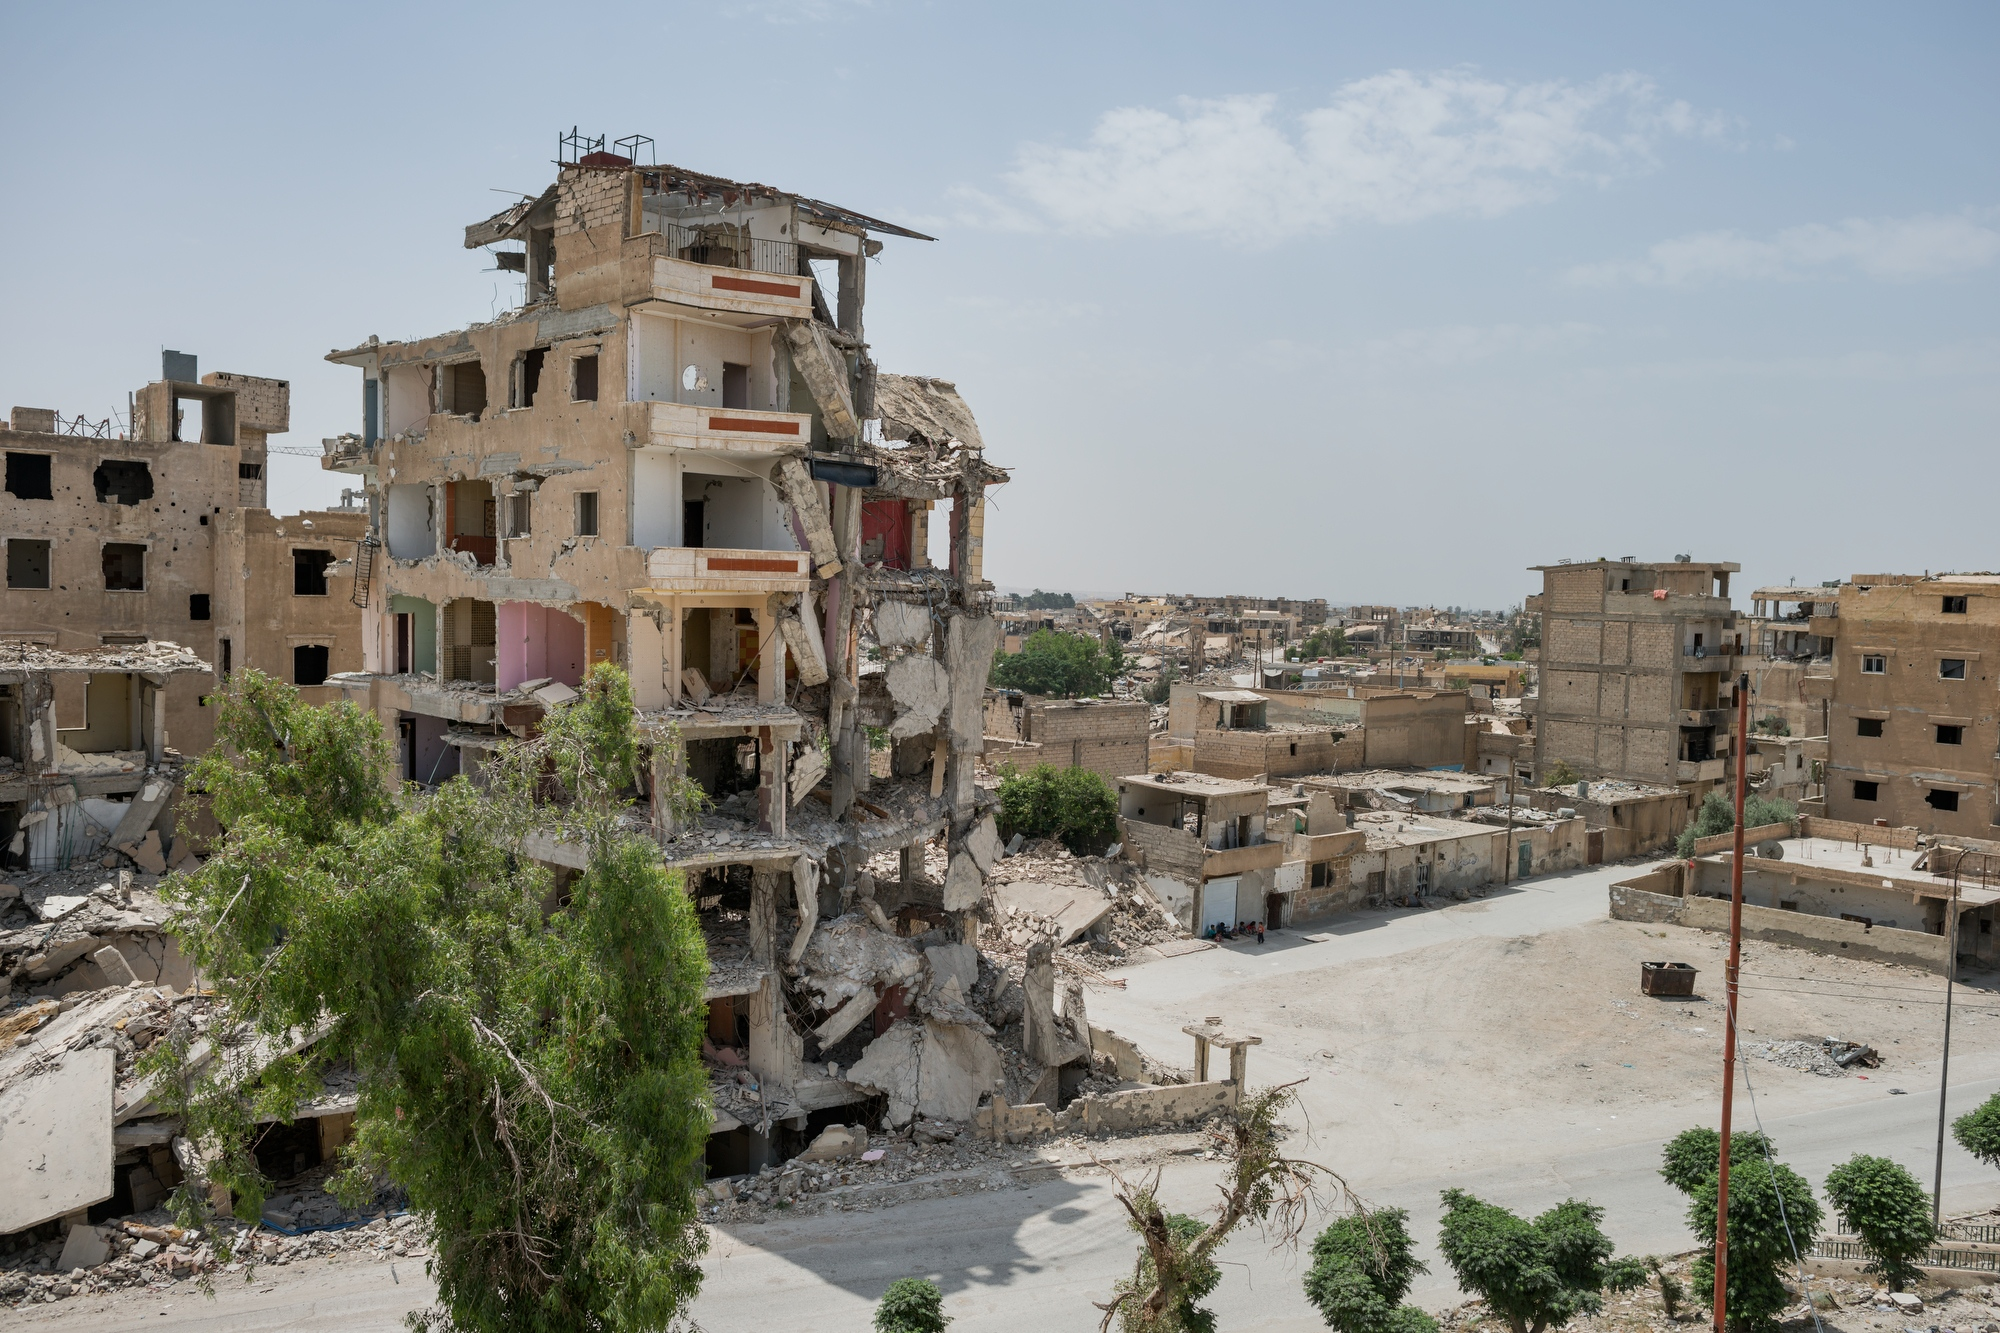 The view from one of the still standing buildings in Raqqa. About 80% of the city is estimated to have been destroyed due to the heavy fighting against Daesh.